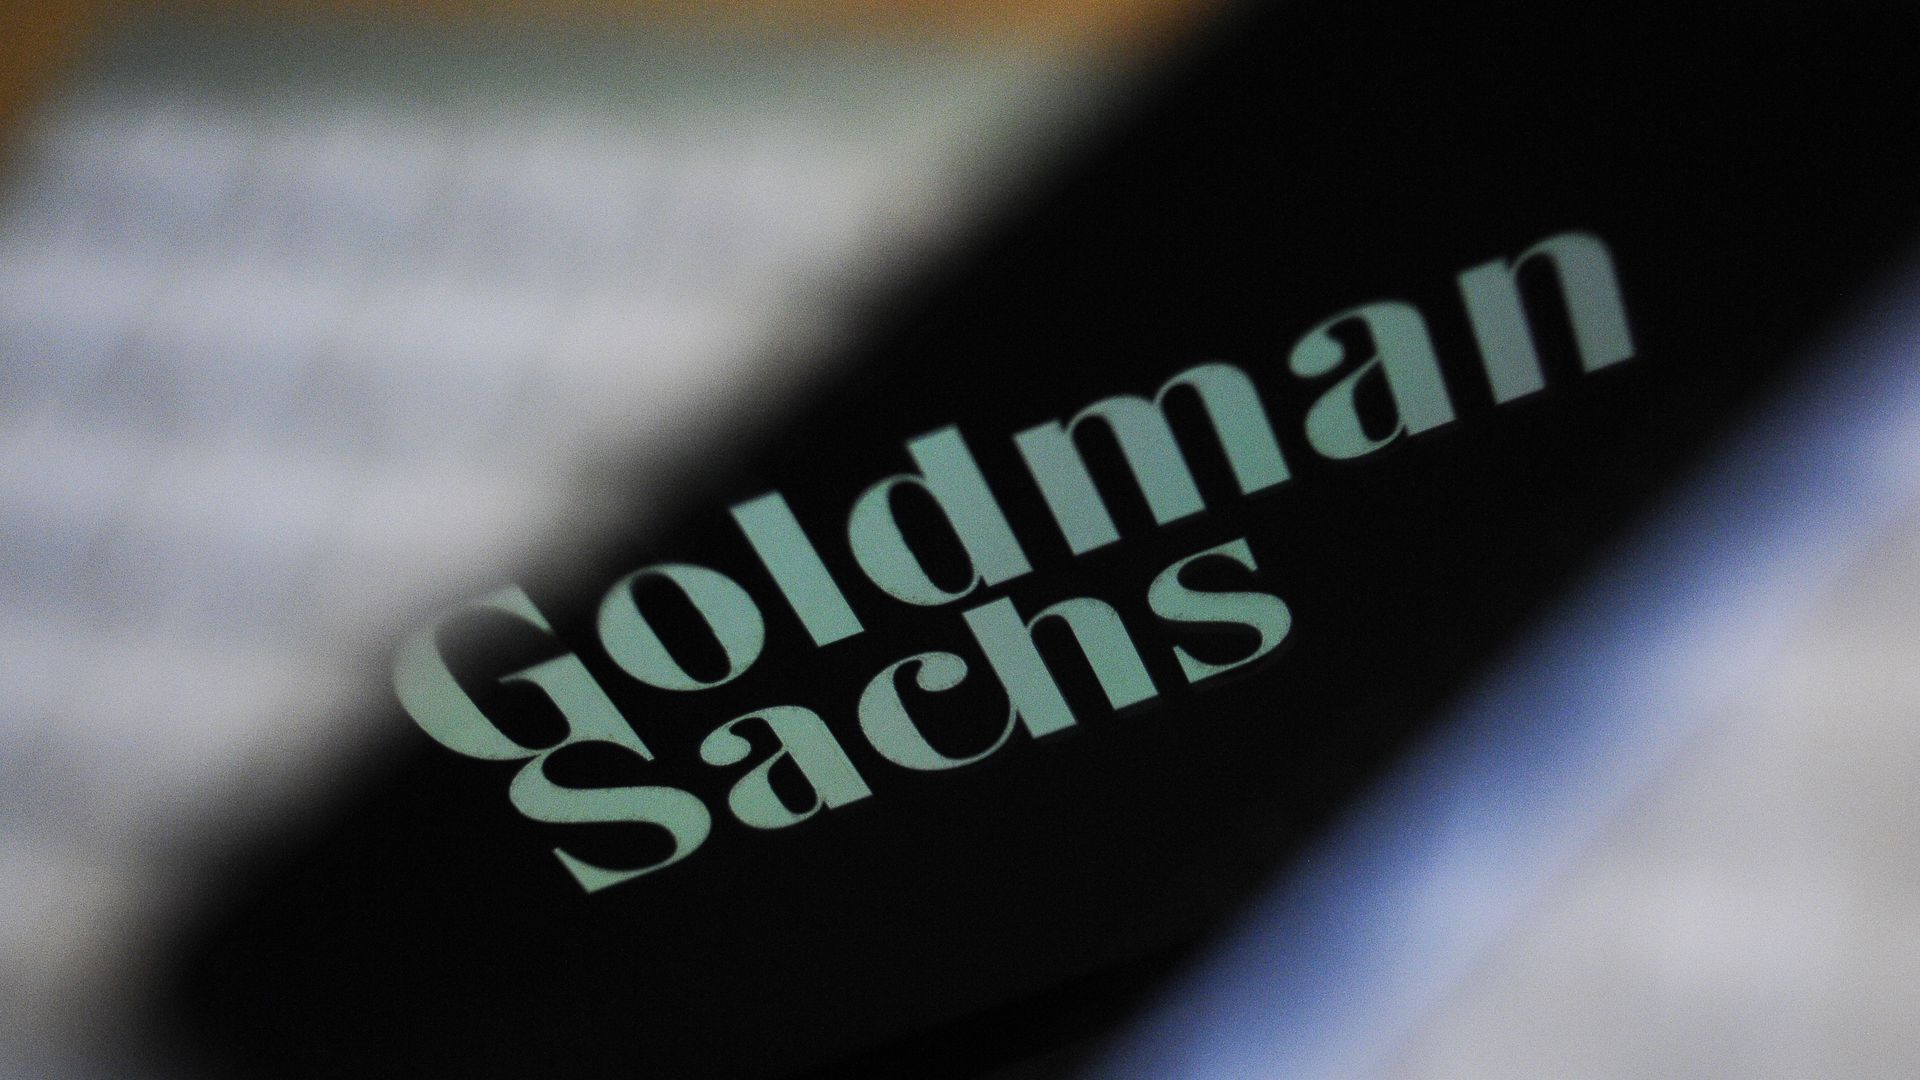 The Goldman Sachs bank logo is seen reflected on the screen of a mobile phone.